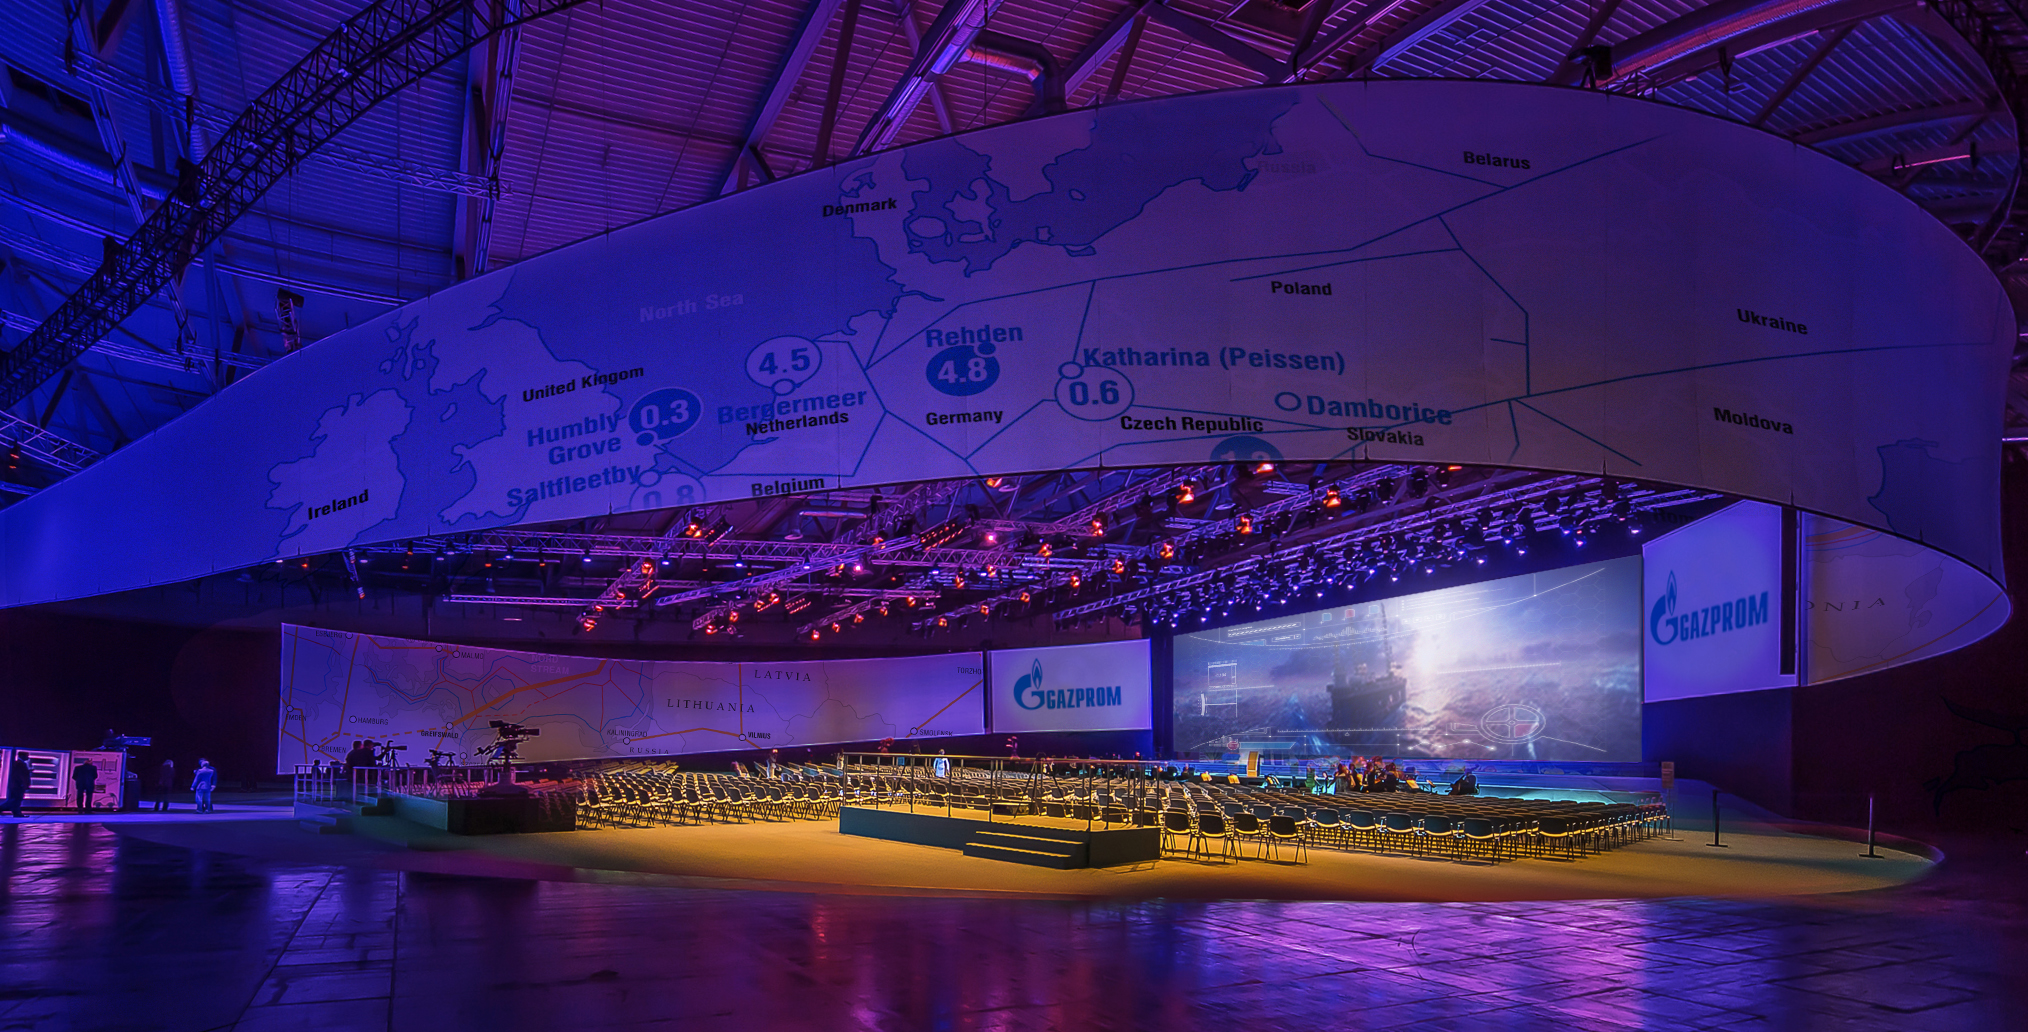 To mark the launch of Gazprom's Nord Stream, Moscow agency RMAA asked MannCG to help bring to life and illustrate a journey of a gas through the pipeline. The team met the challenge by contributing with an idea of dynamic changing environments, giving visitors the illusion of an exciting journey. MannCG developed an immersive 360 film and series of interactive projections, which animated the map as visitors walked by.